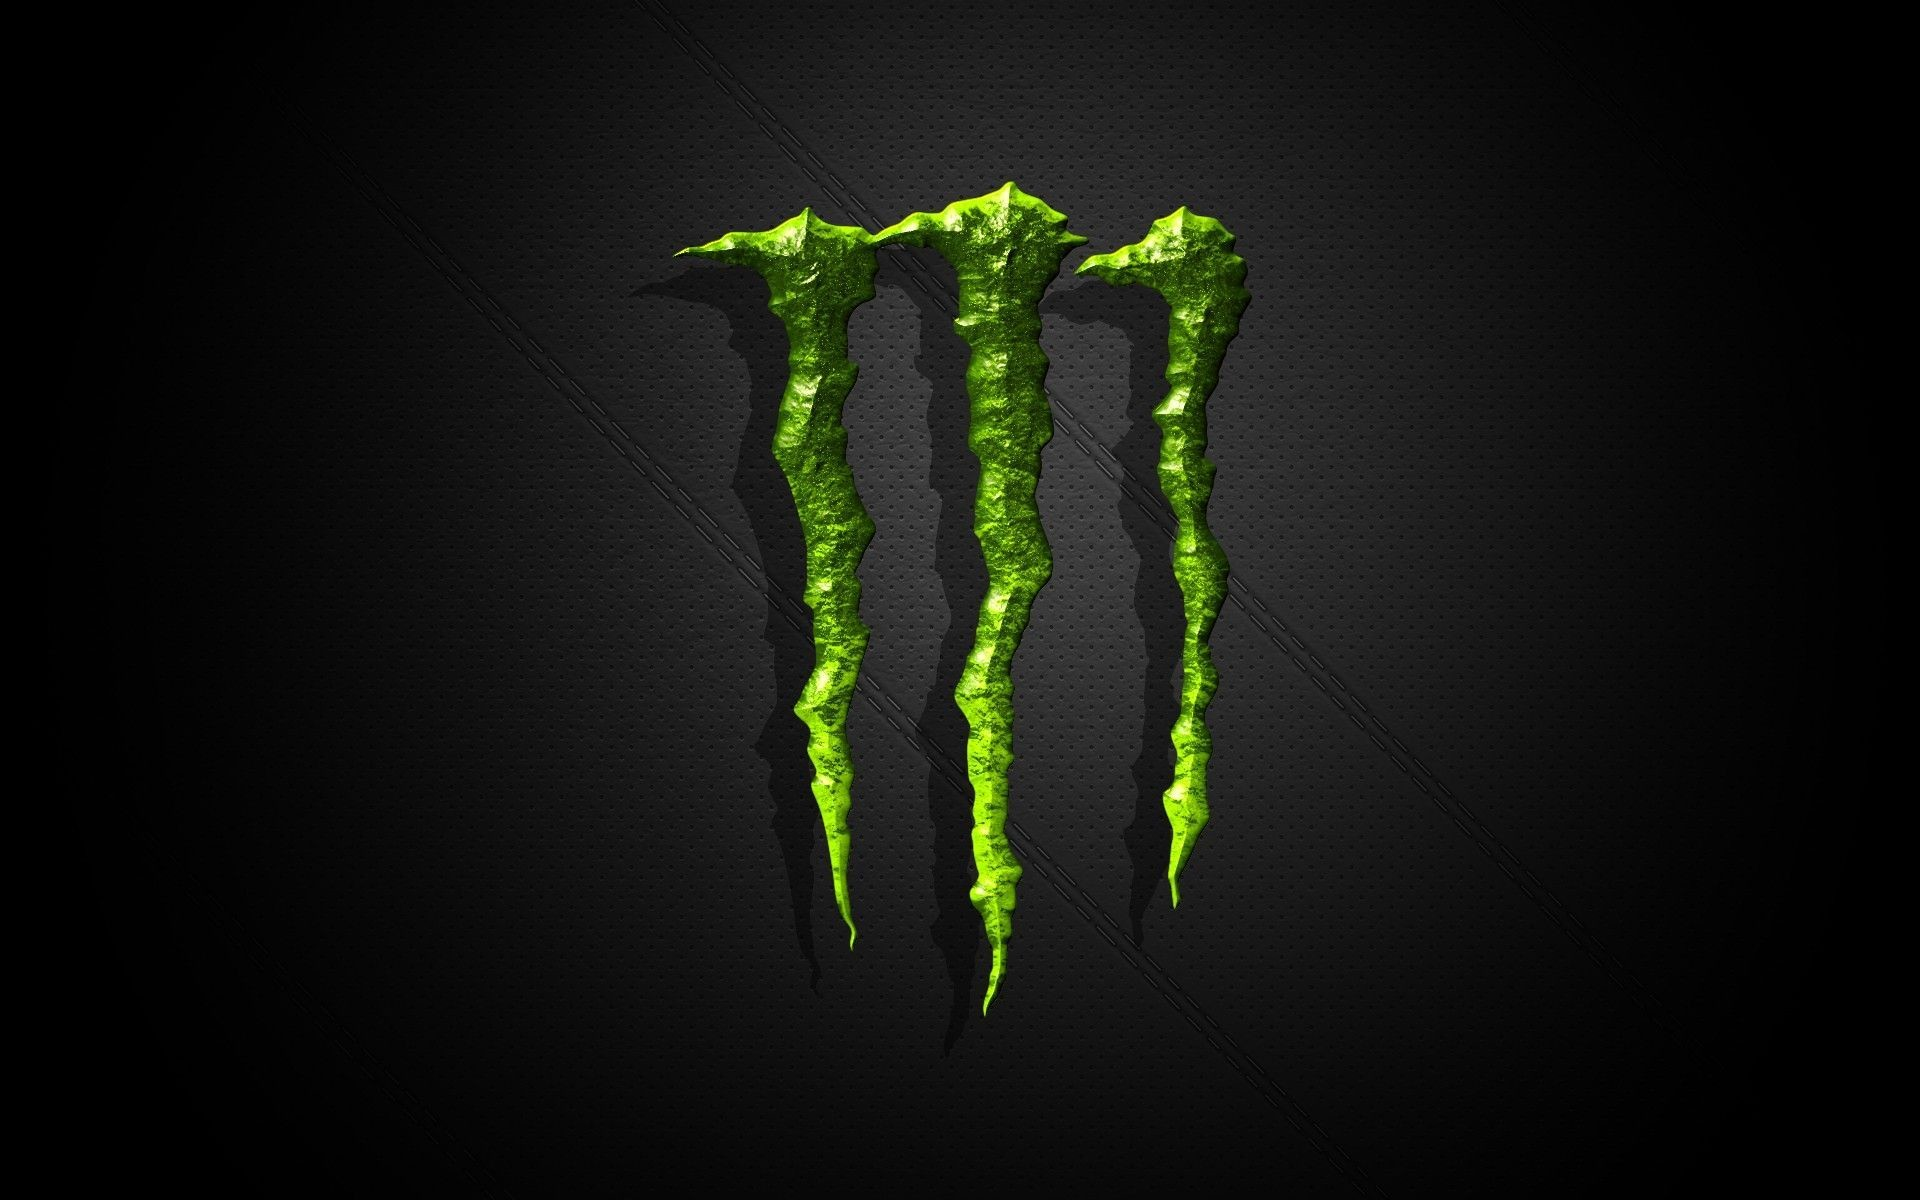 Cool monster wallpapers 65 images - Monster energy wallpaper download ...